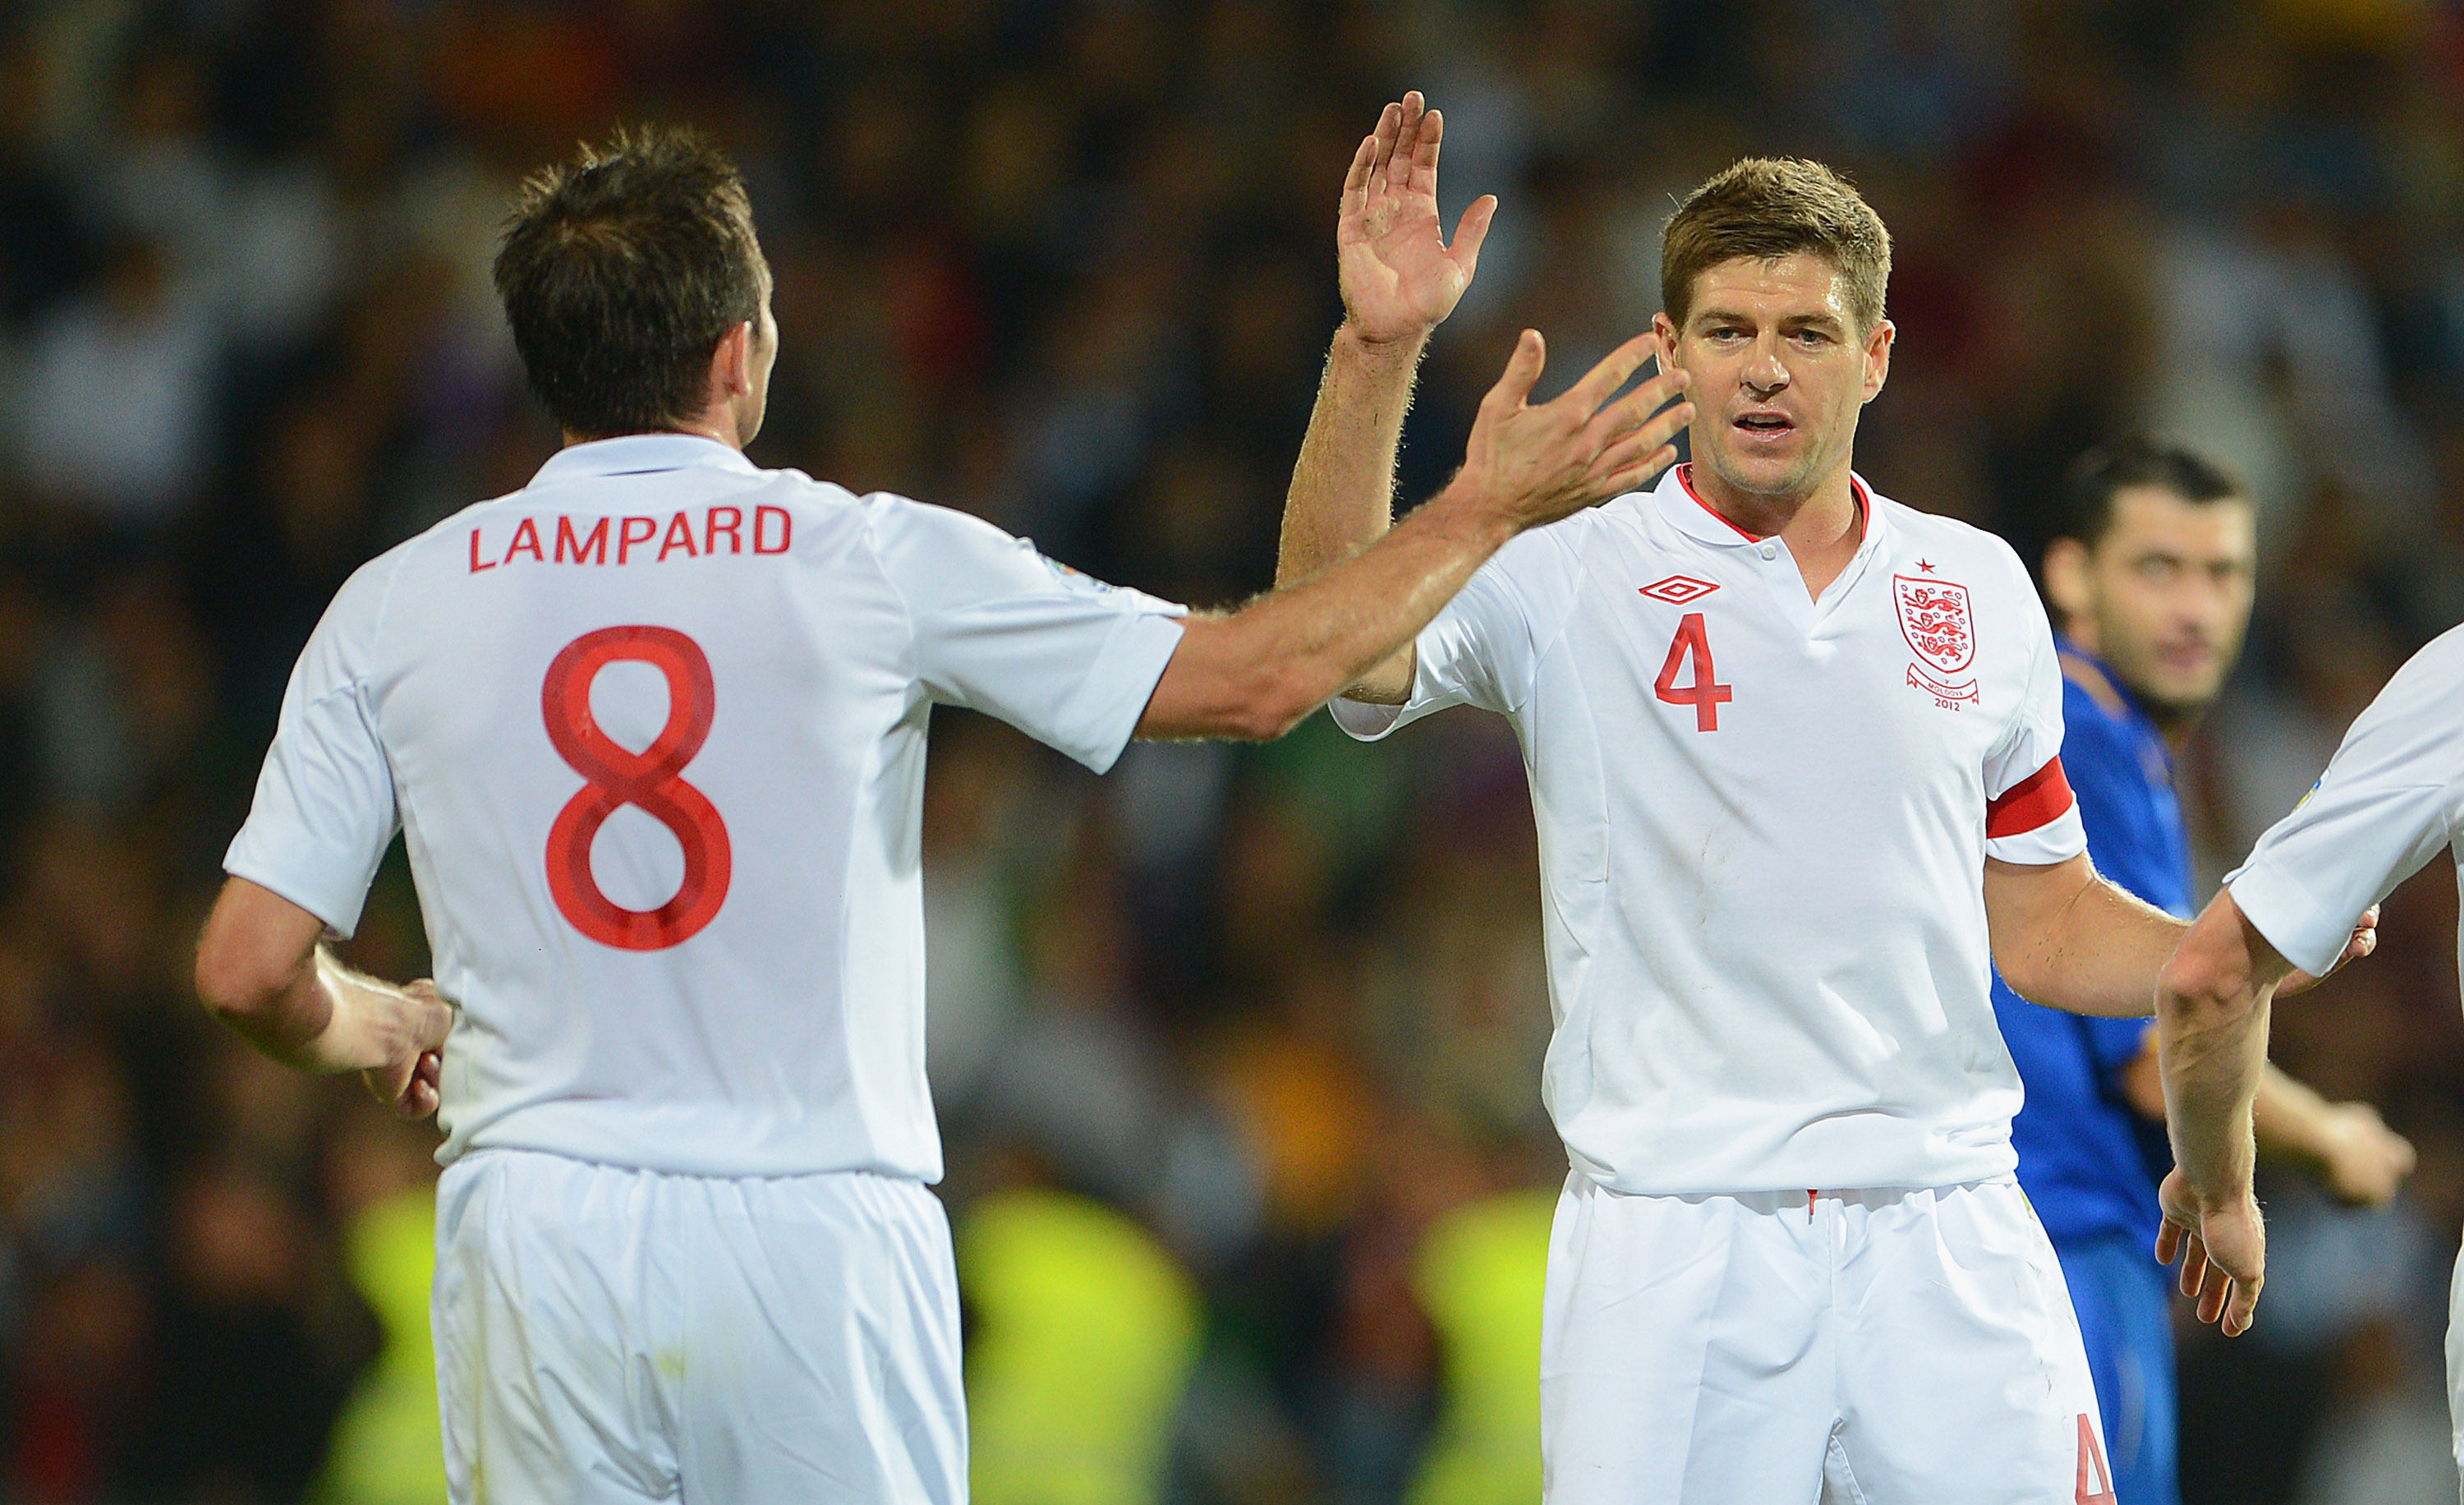 Frank Lampard Steven Gerrard World Cup 2014 qualifie 09072012